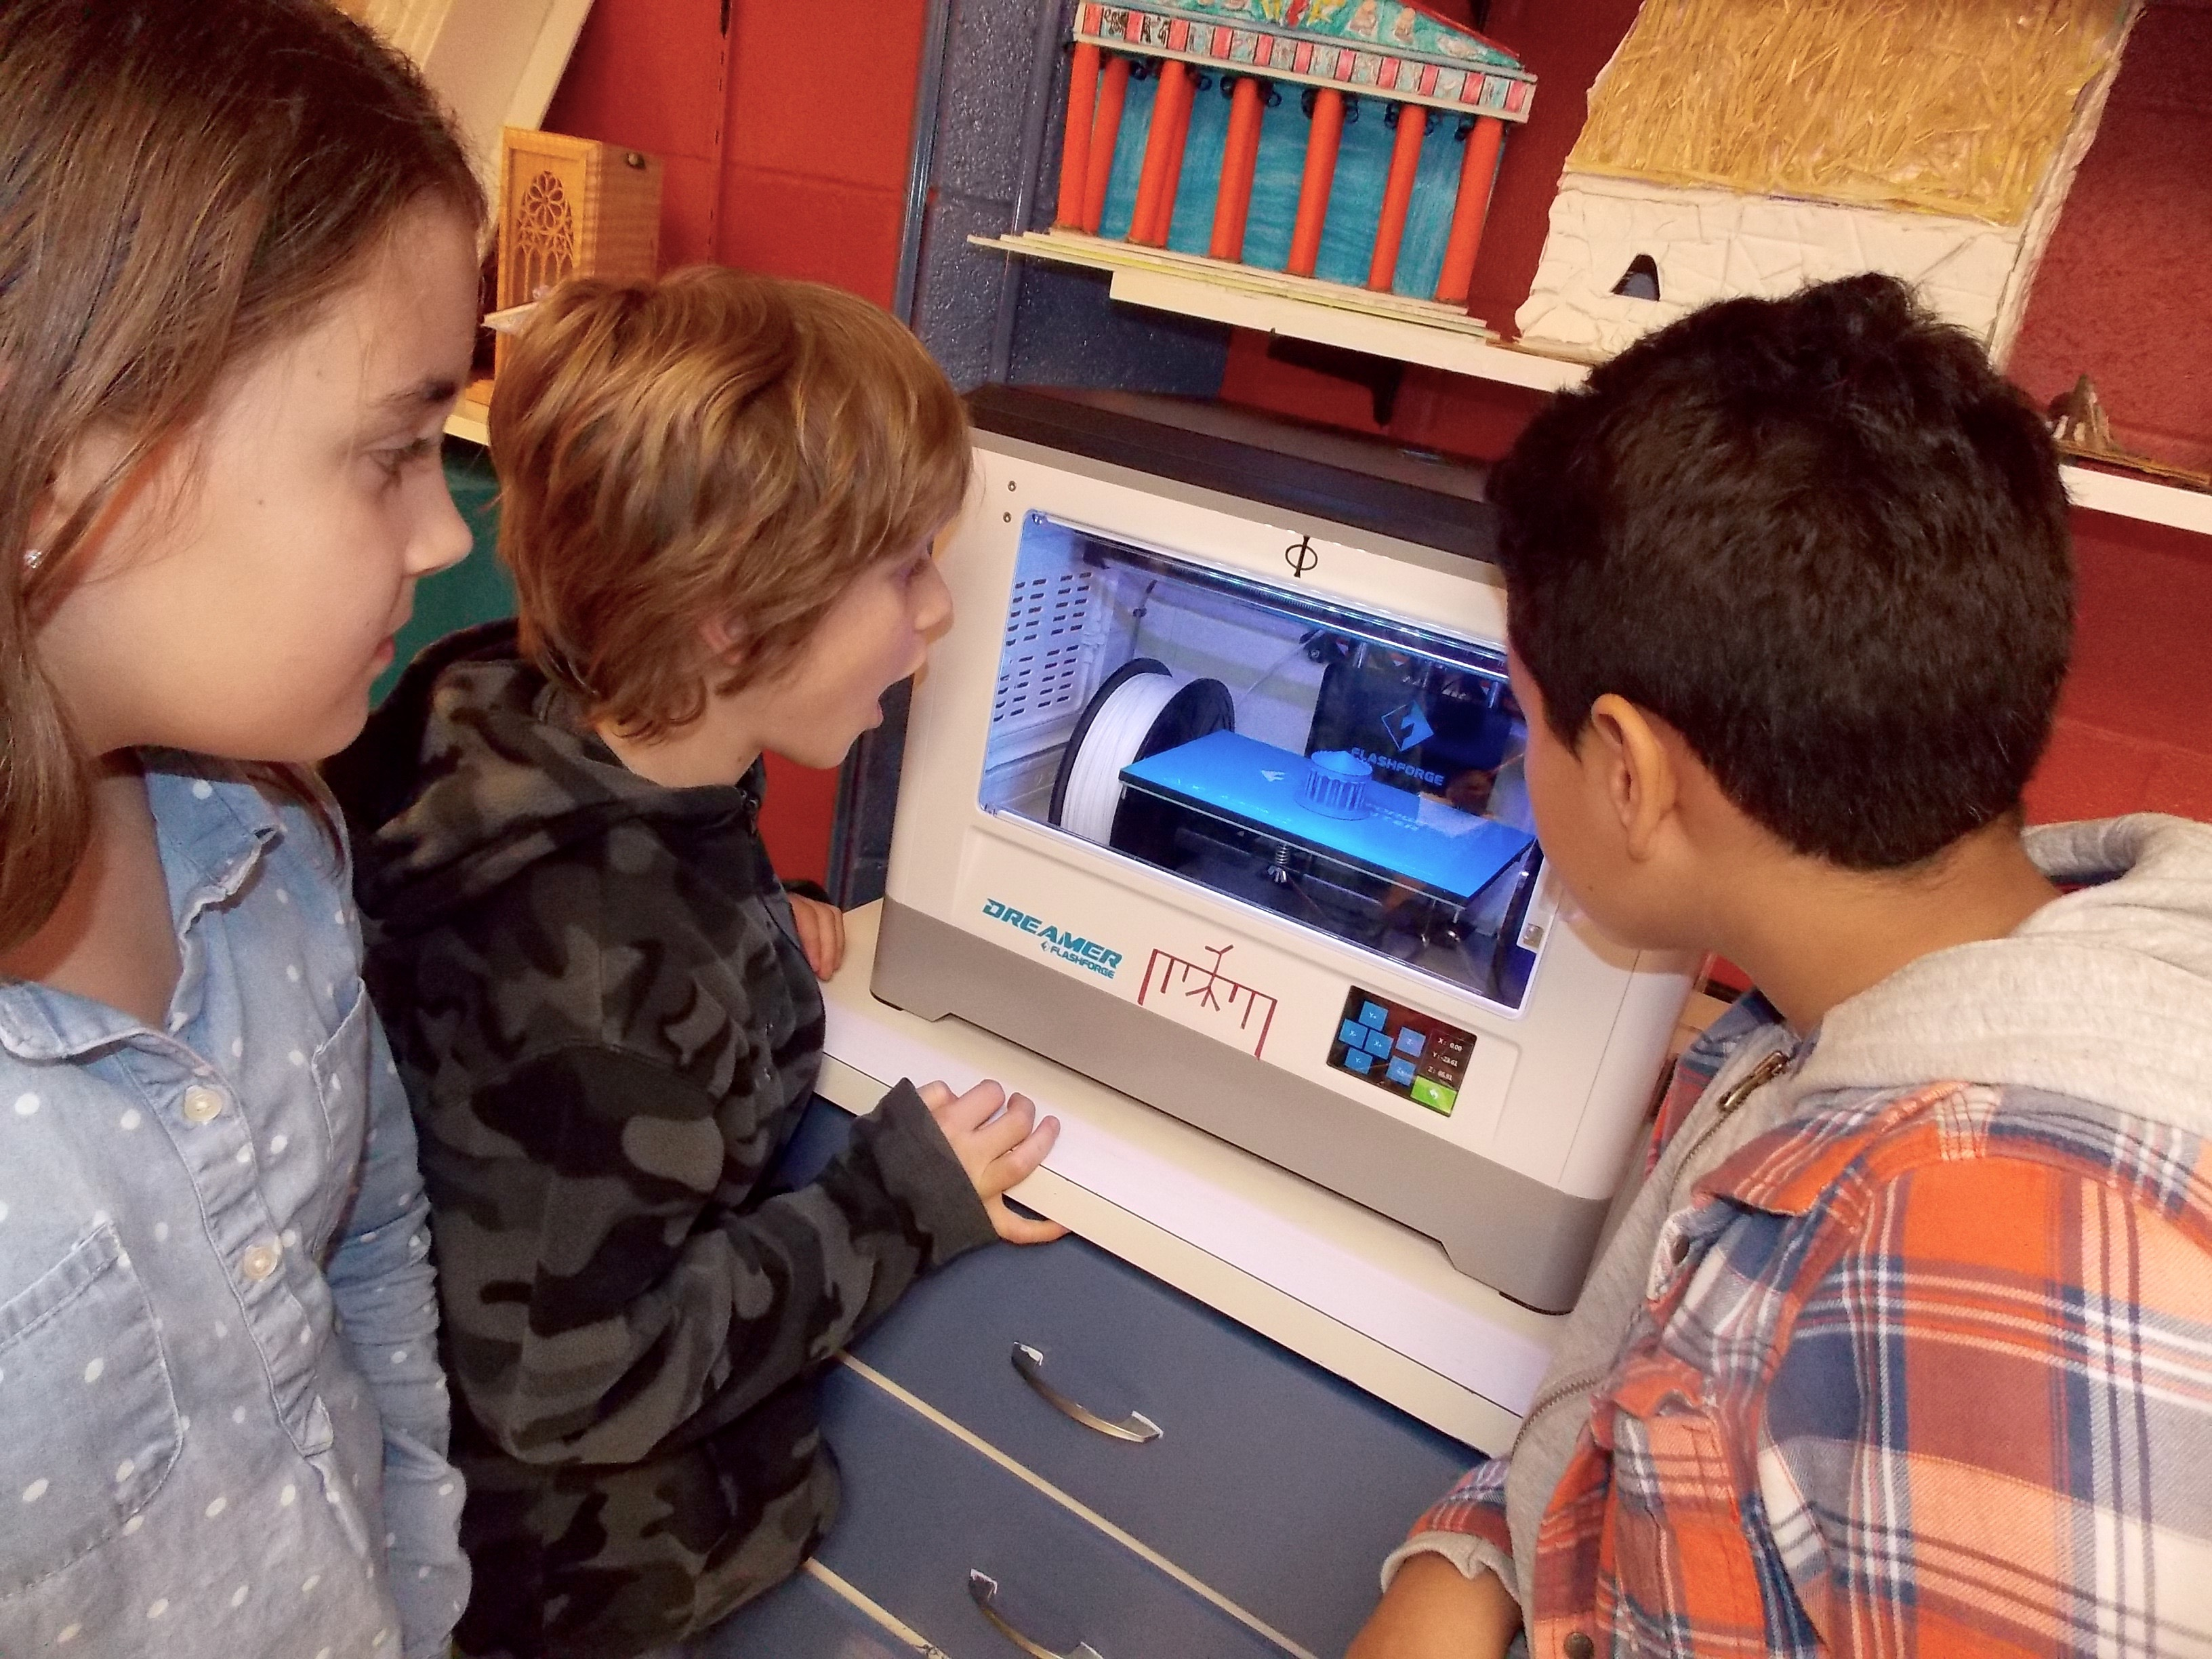 Architecture students delight in the new 3D printer